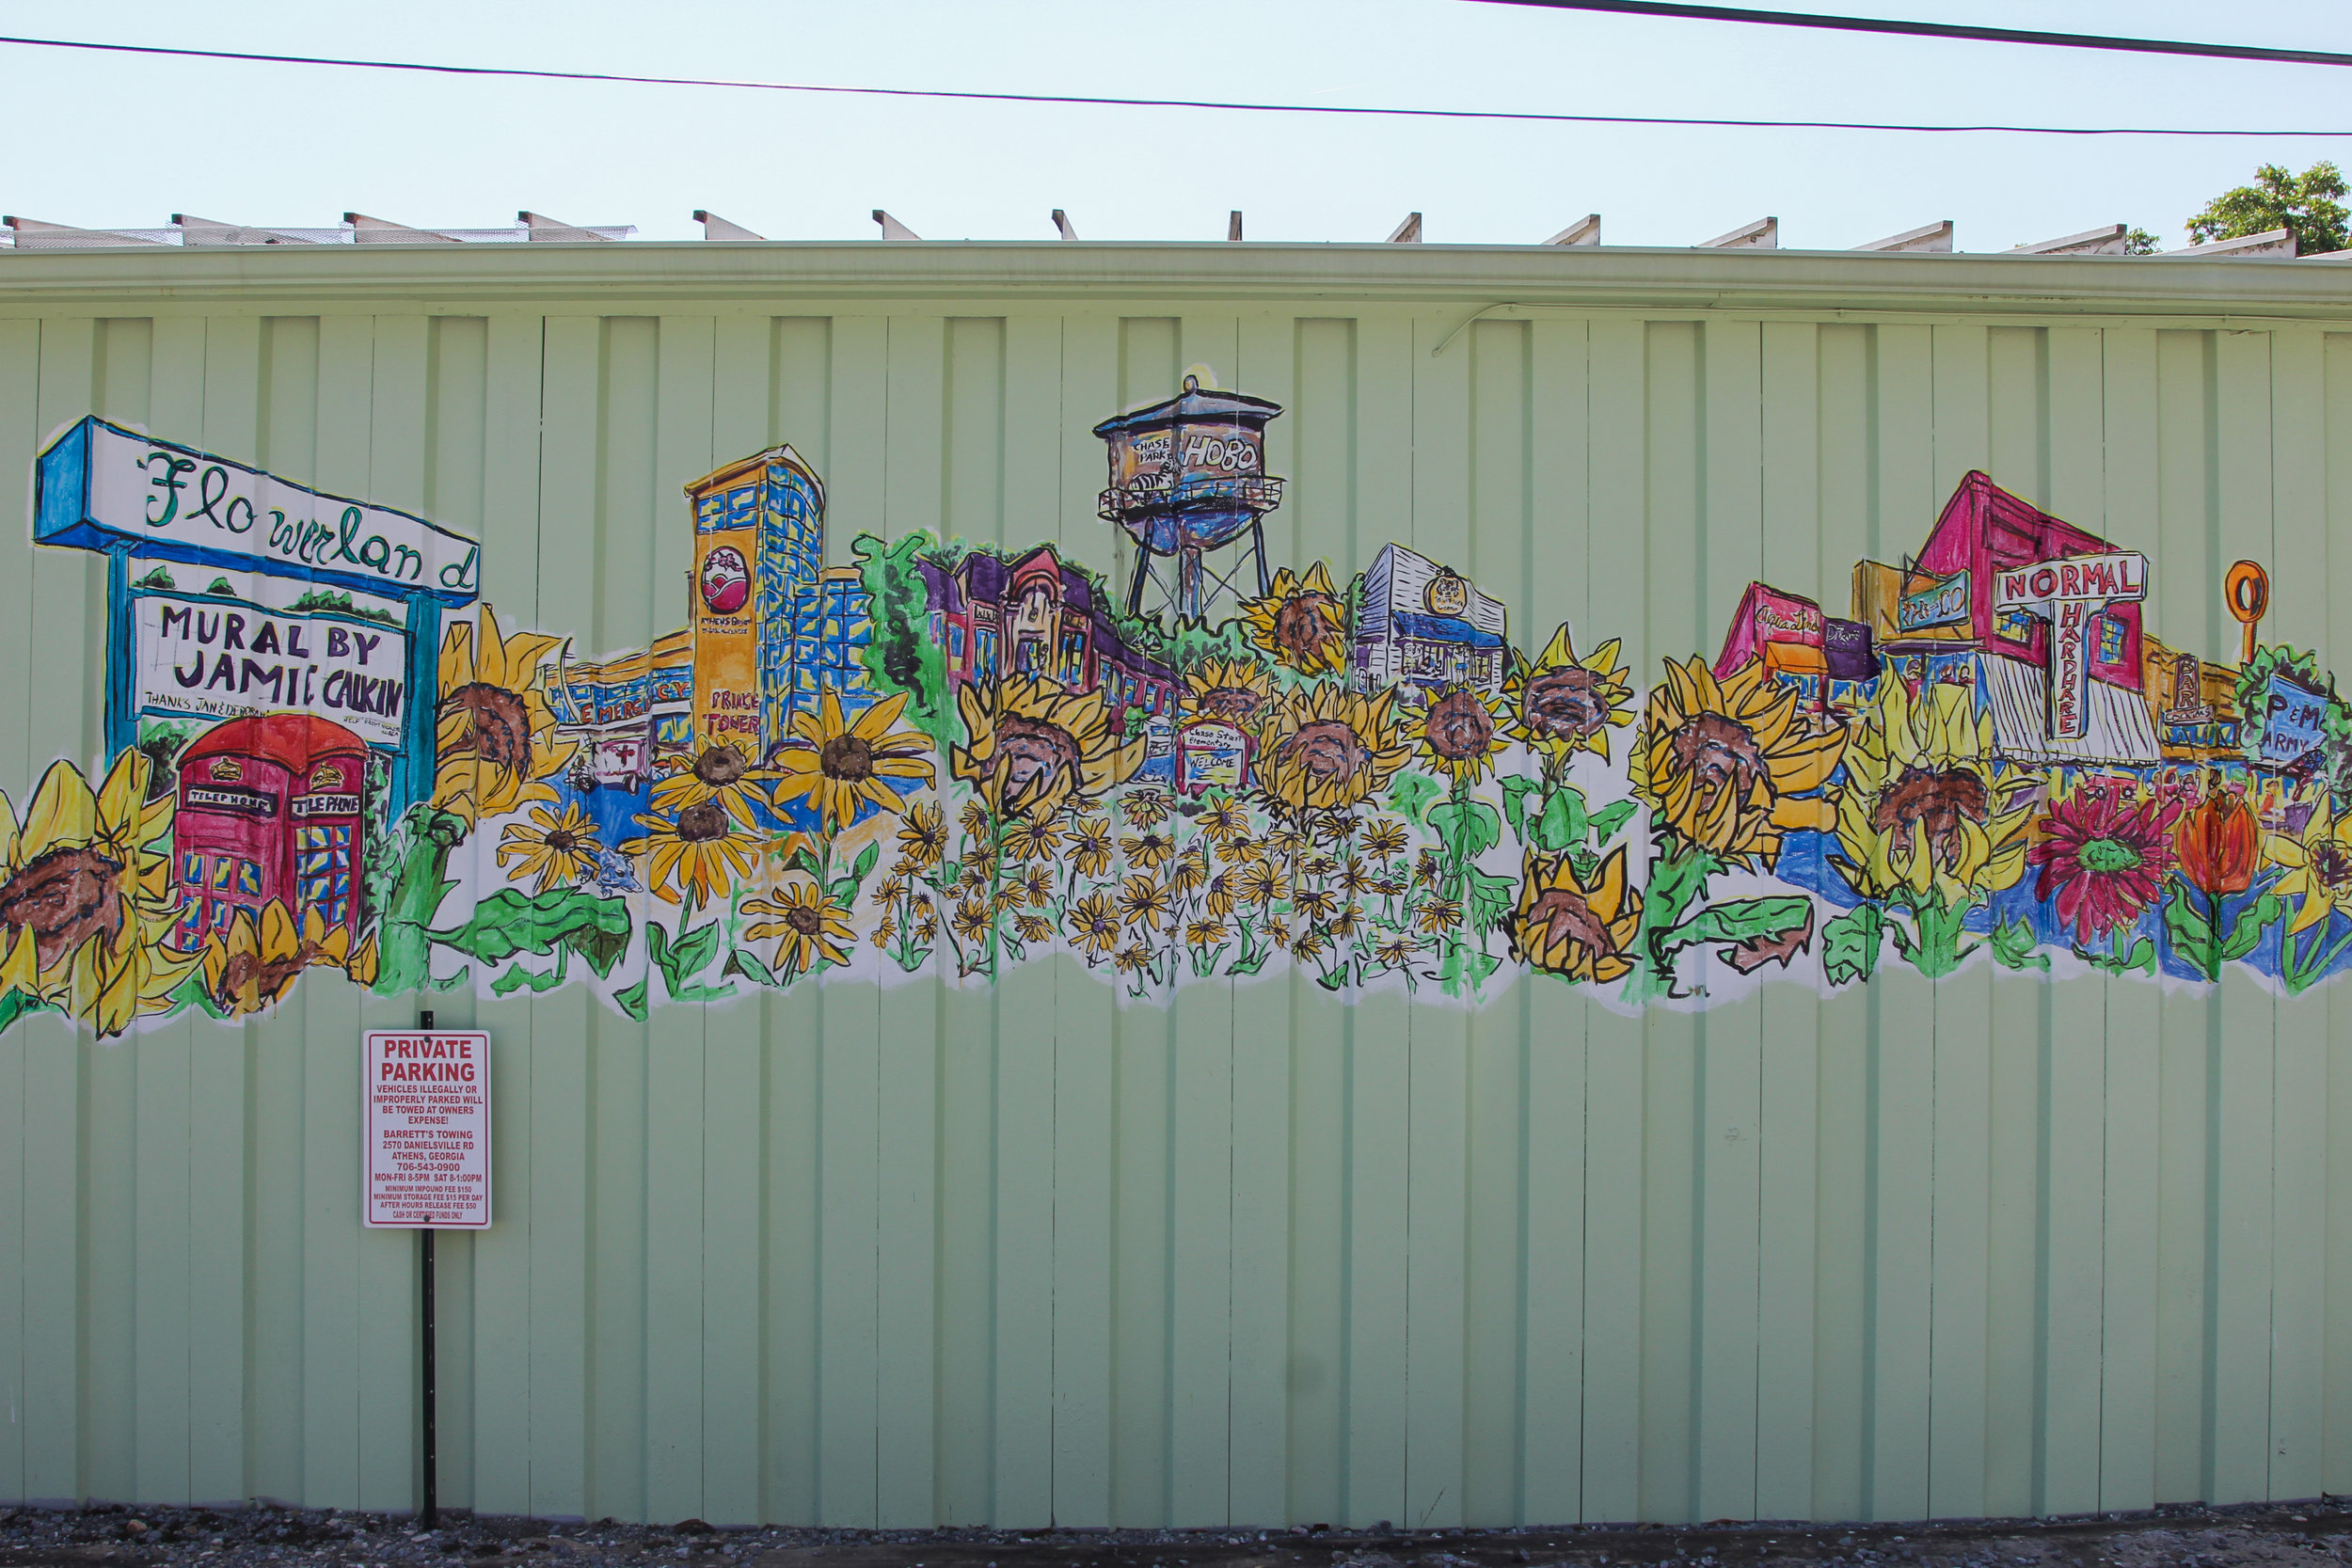 Flowerland Mural (i shared folder) - photo credit: Reann Huber    Started 2015, Completed 2016    Waterproof Inks on corrugated siding    3 sides: 2 sides 4x40ft, front side 2x30ft    Located 823 Prince Ave, Athens, GA    photo credit: Reann Huber